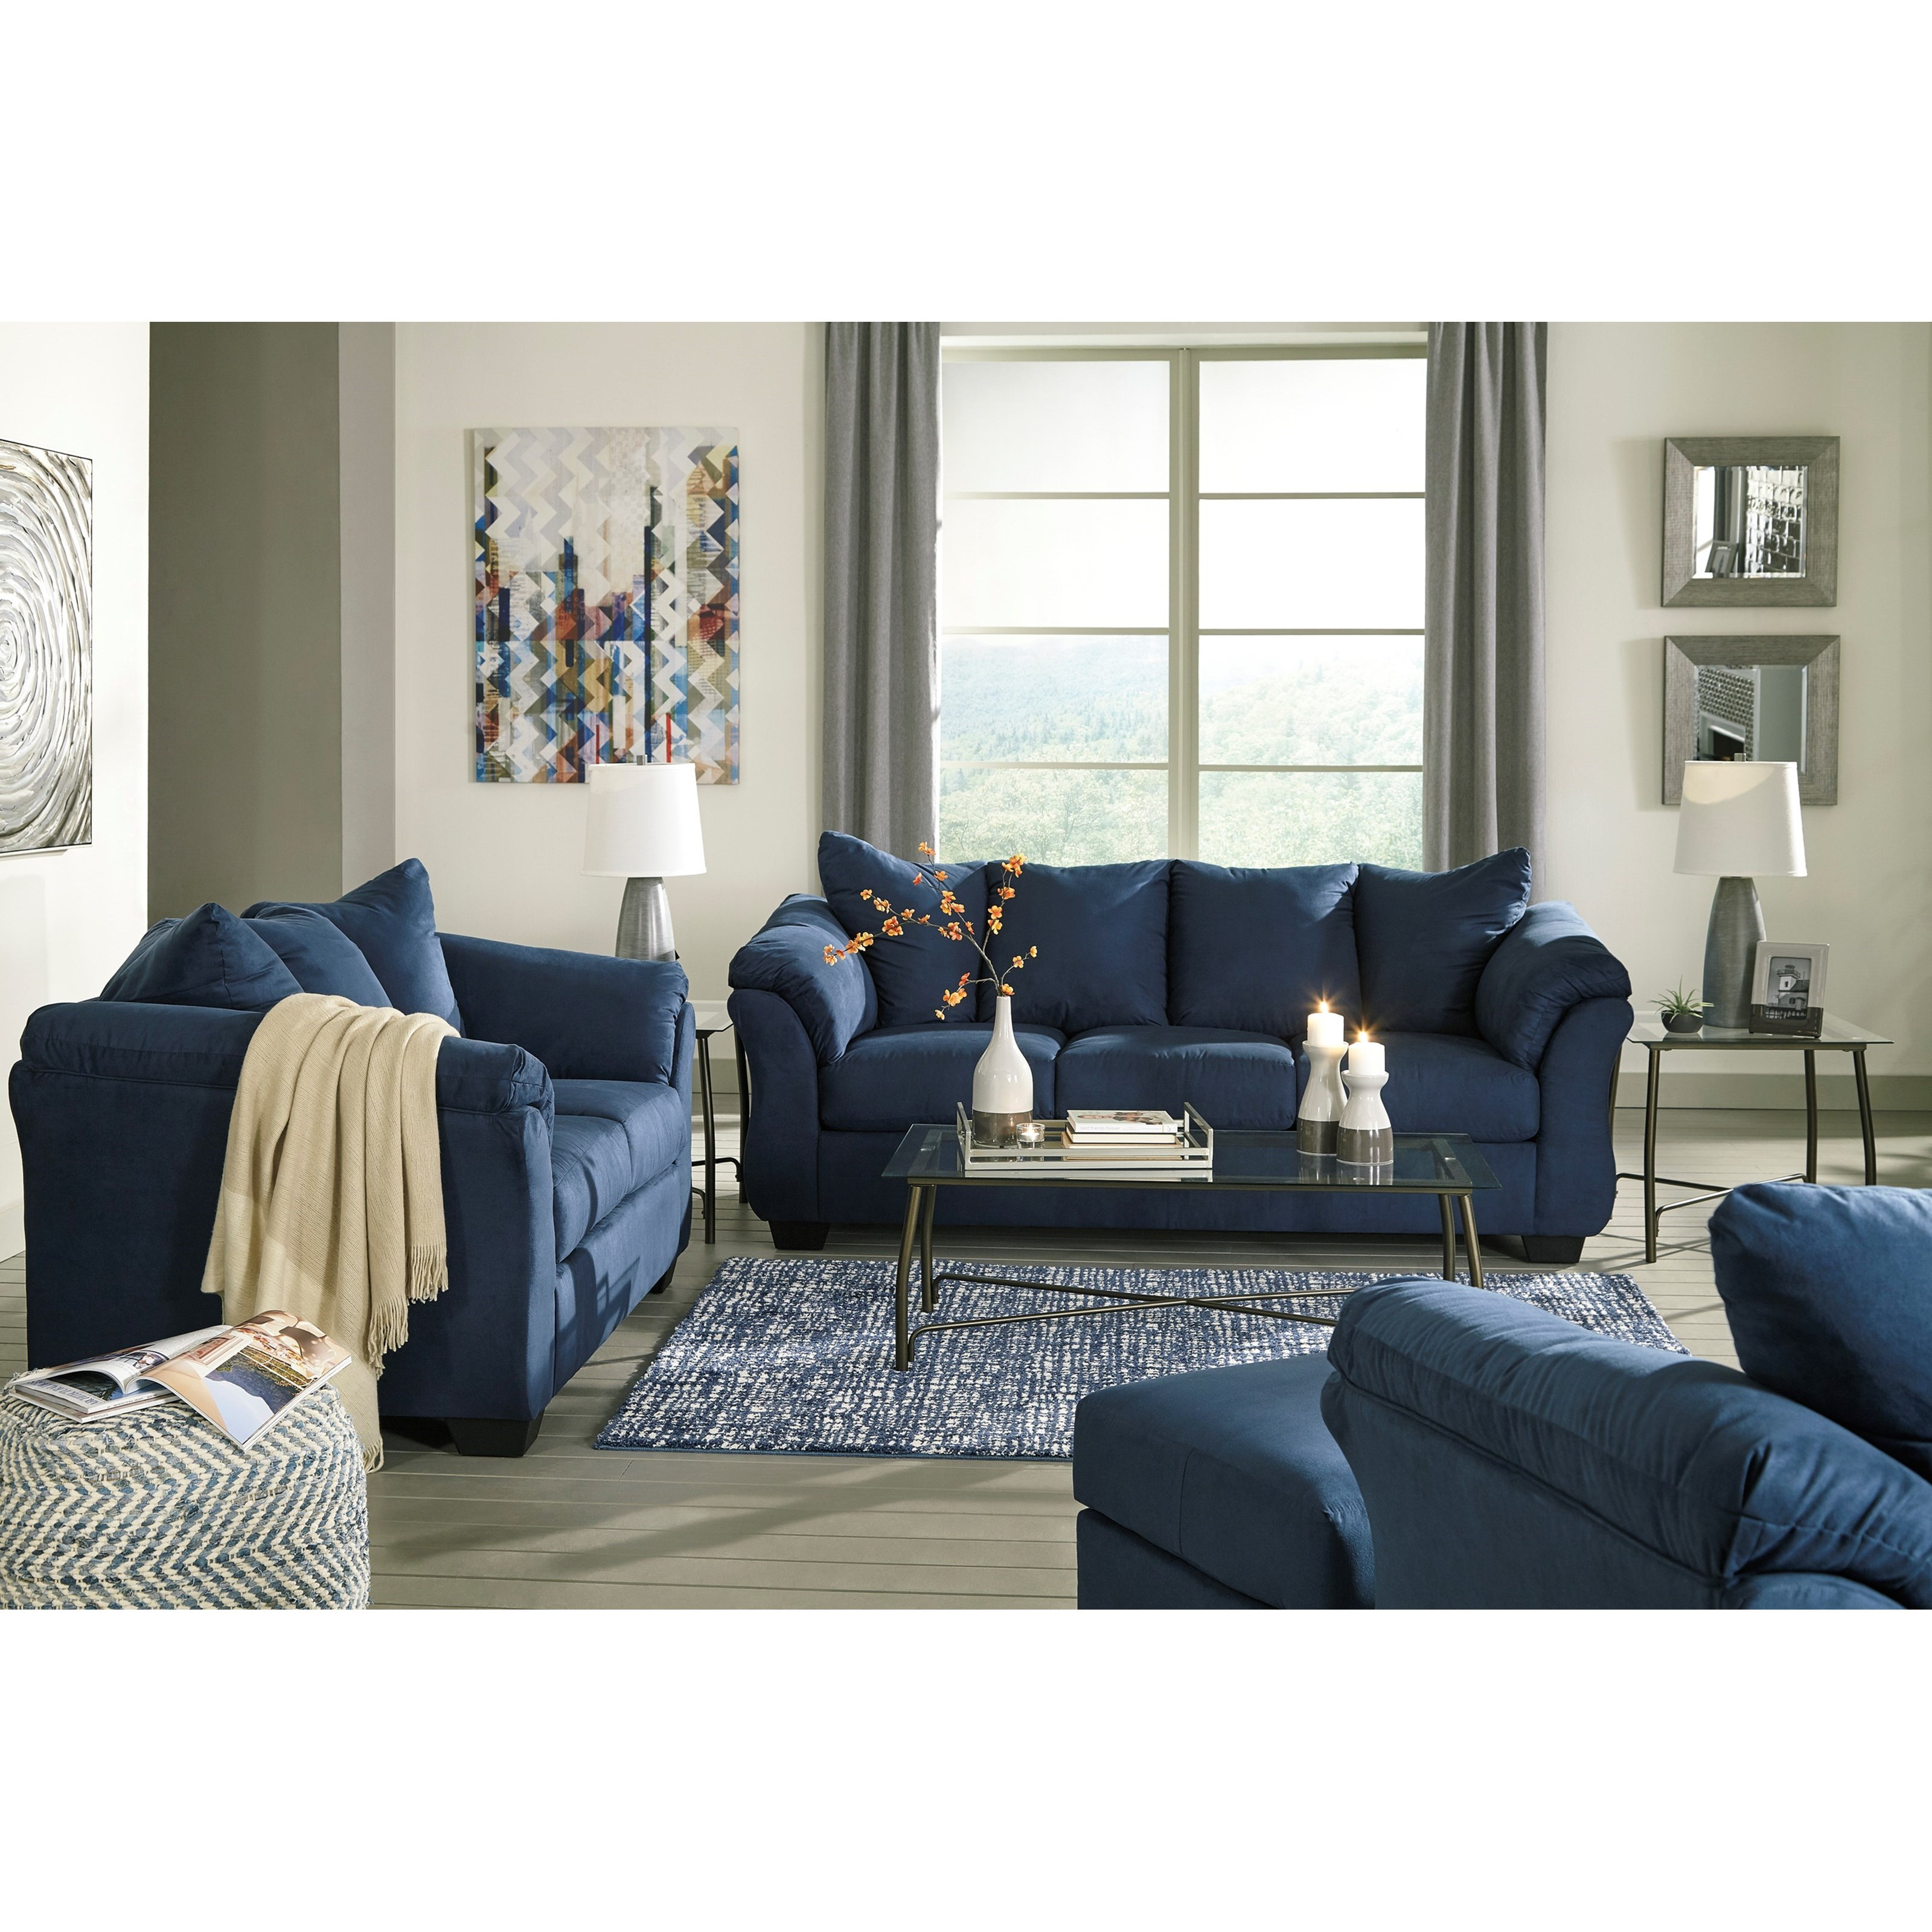 Signature Design by Ashley Darcy Blue Stationary Living Room